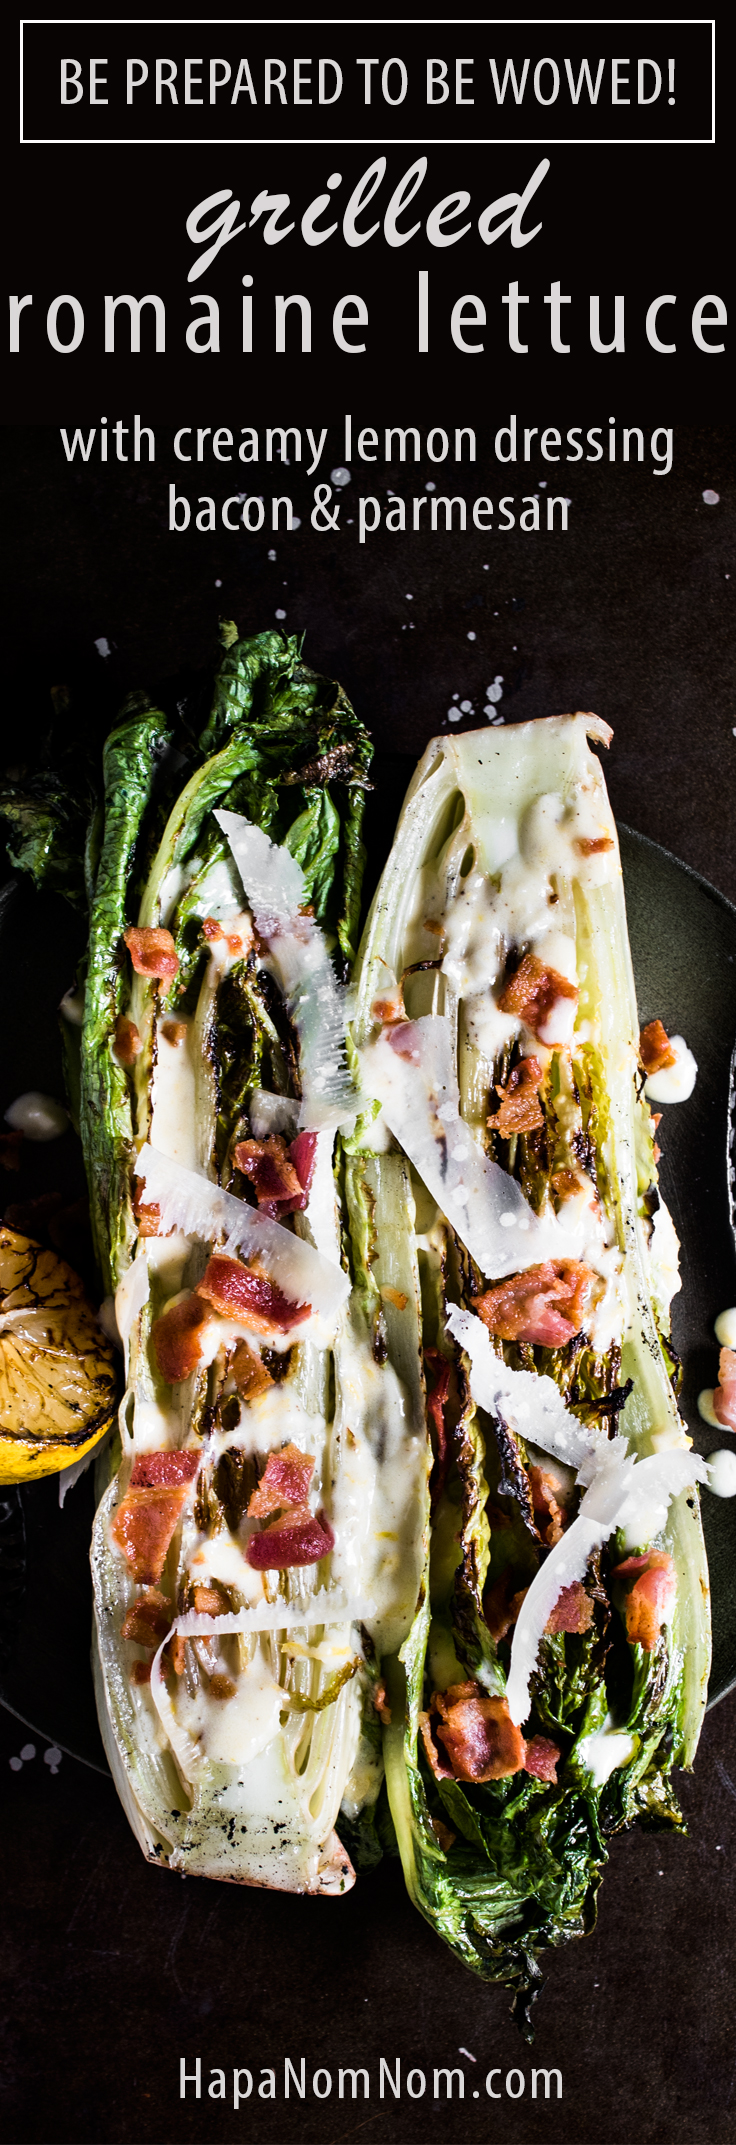 You've got to give this Grilled Romaine Lettuce with Creamy Lemon Dressing a try! The entire dish takes 10 -15 minutes from start to finish and it's insanely delicious!!!